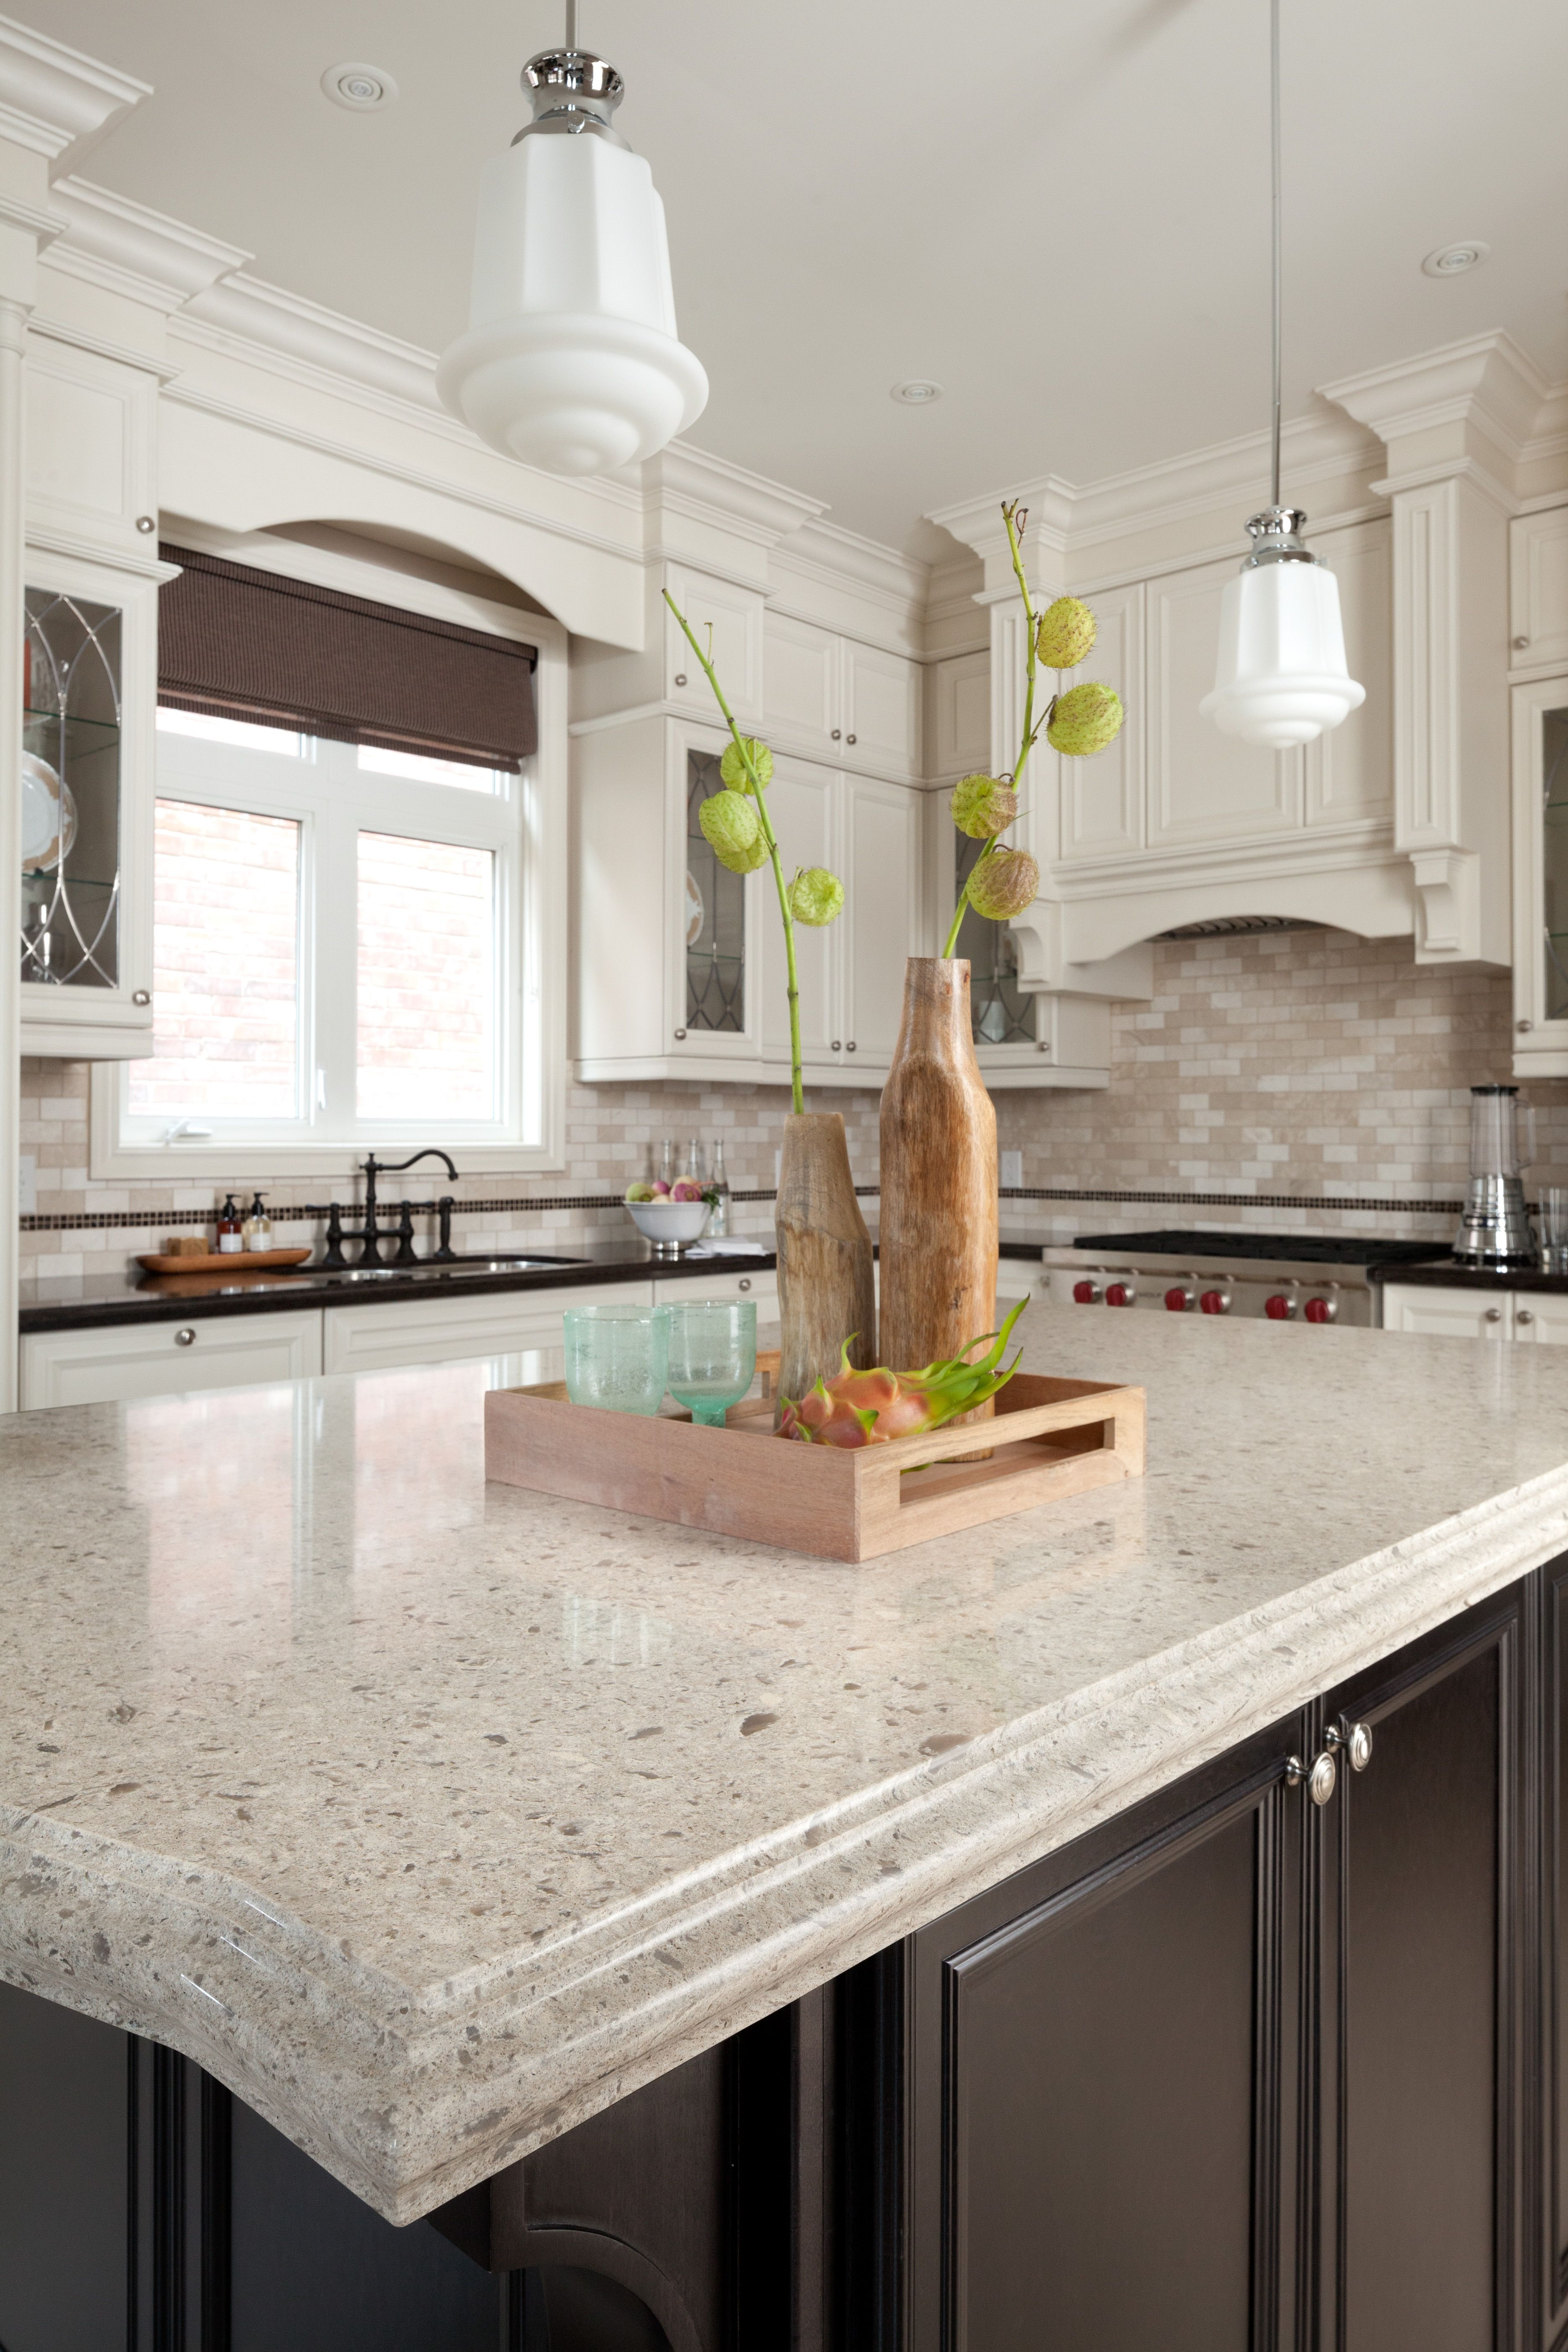 Cambria Becomes Sculptural Art & Functional Decor In The Hands Of Cool Latest Designer Kitchen Decorating Design